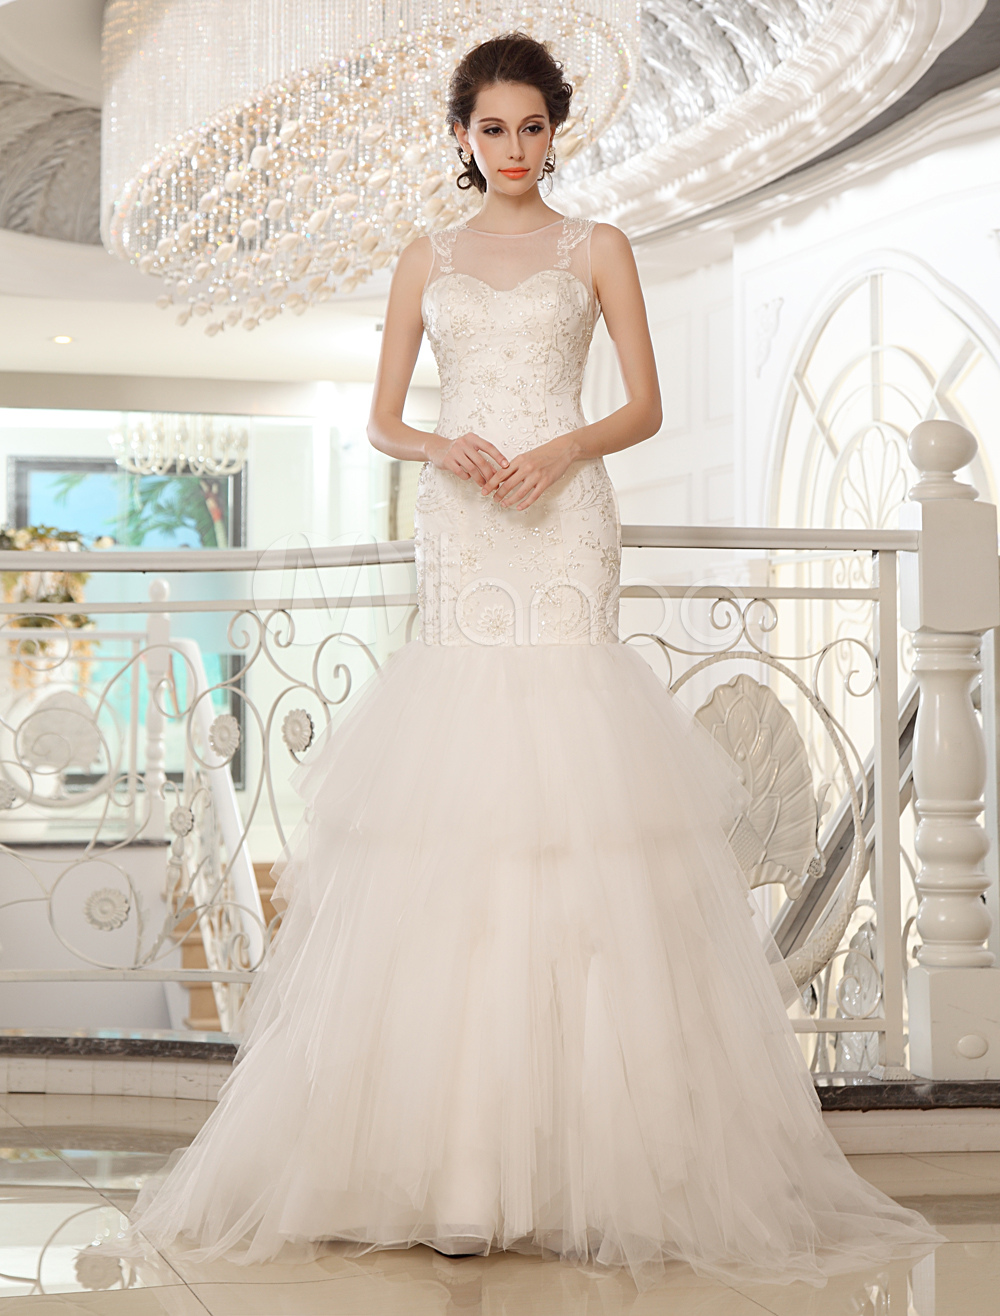 Sweep Ivory Mermaid Jewel Bridal Wedding Dress with Sequin Milanoo